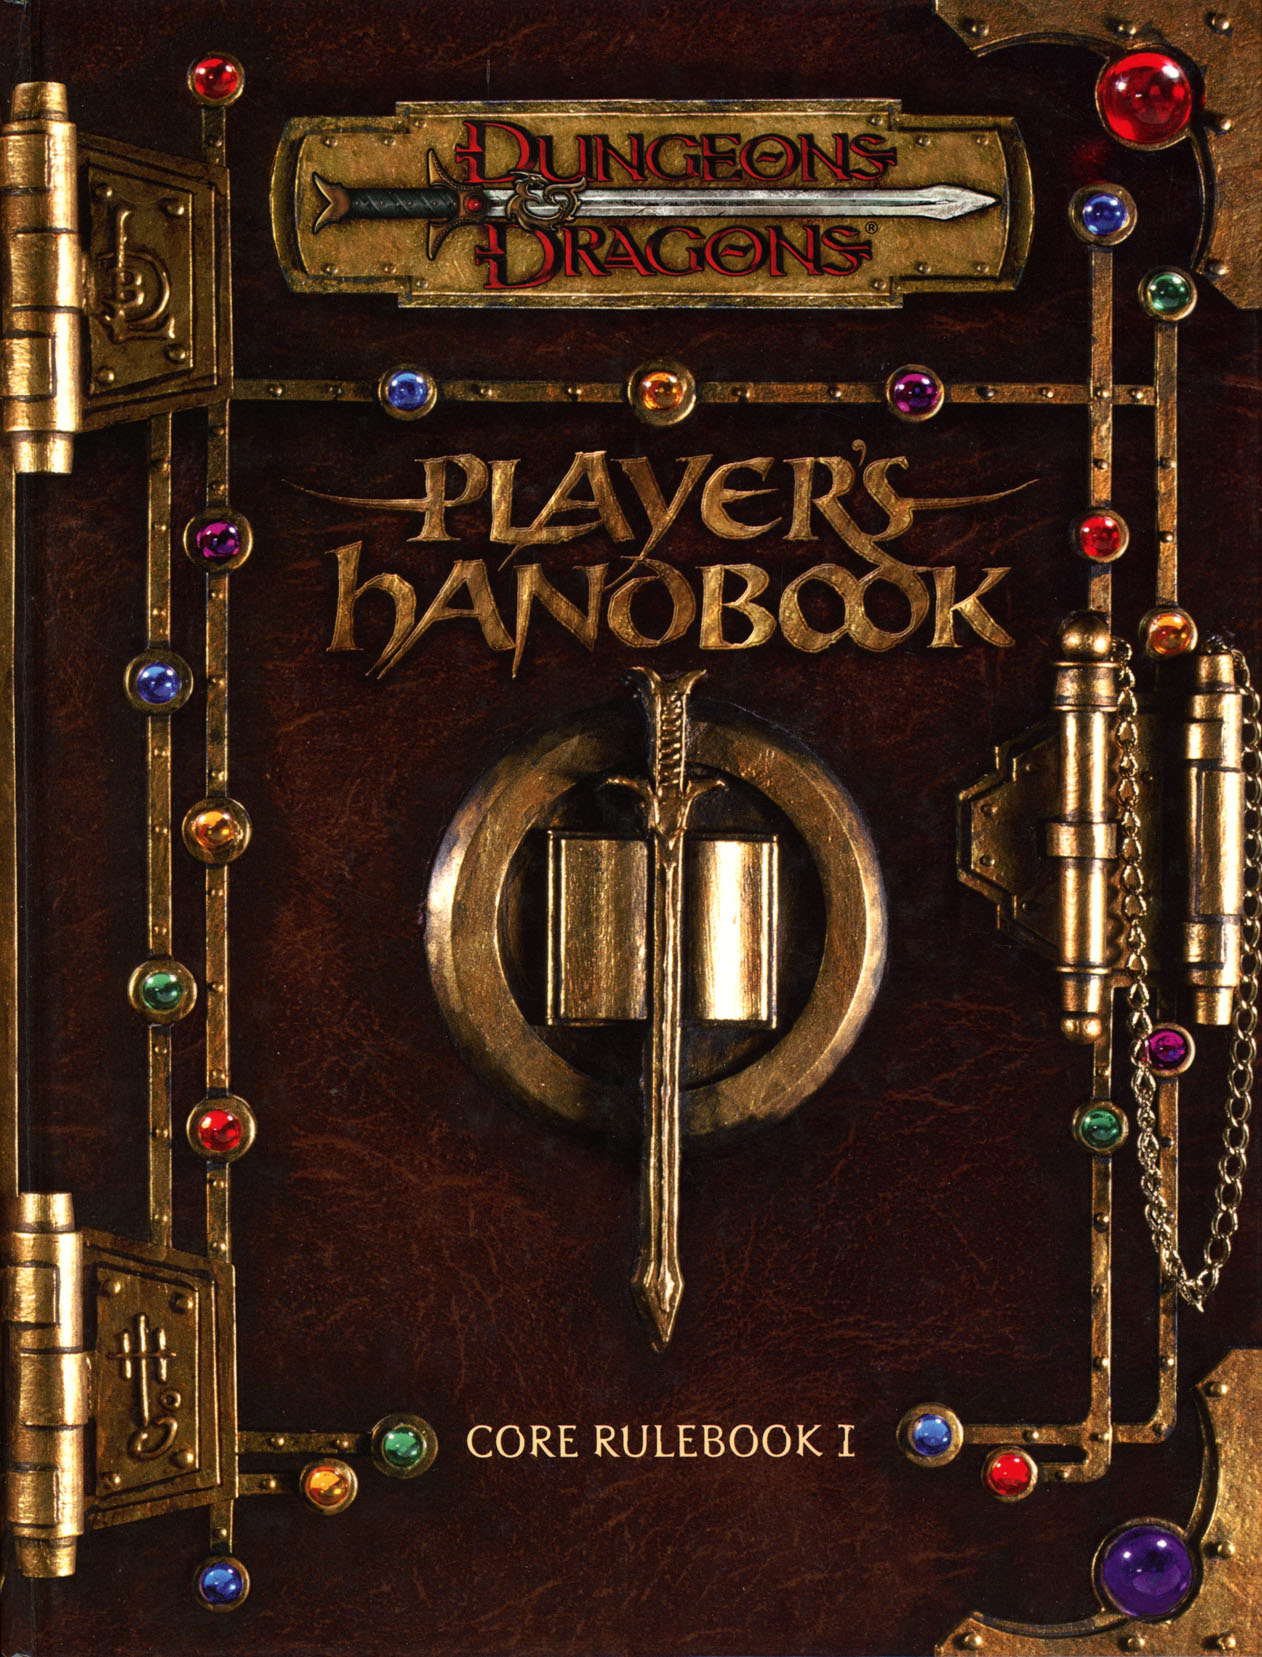 players handbook 5th edition dungeons & dragons